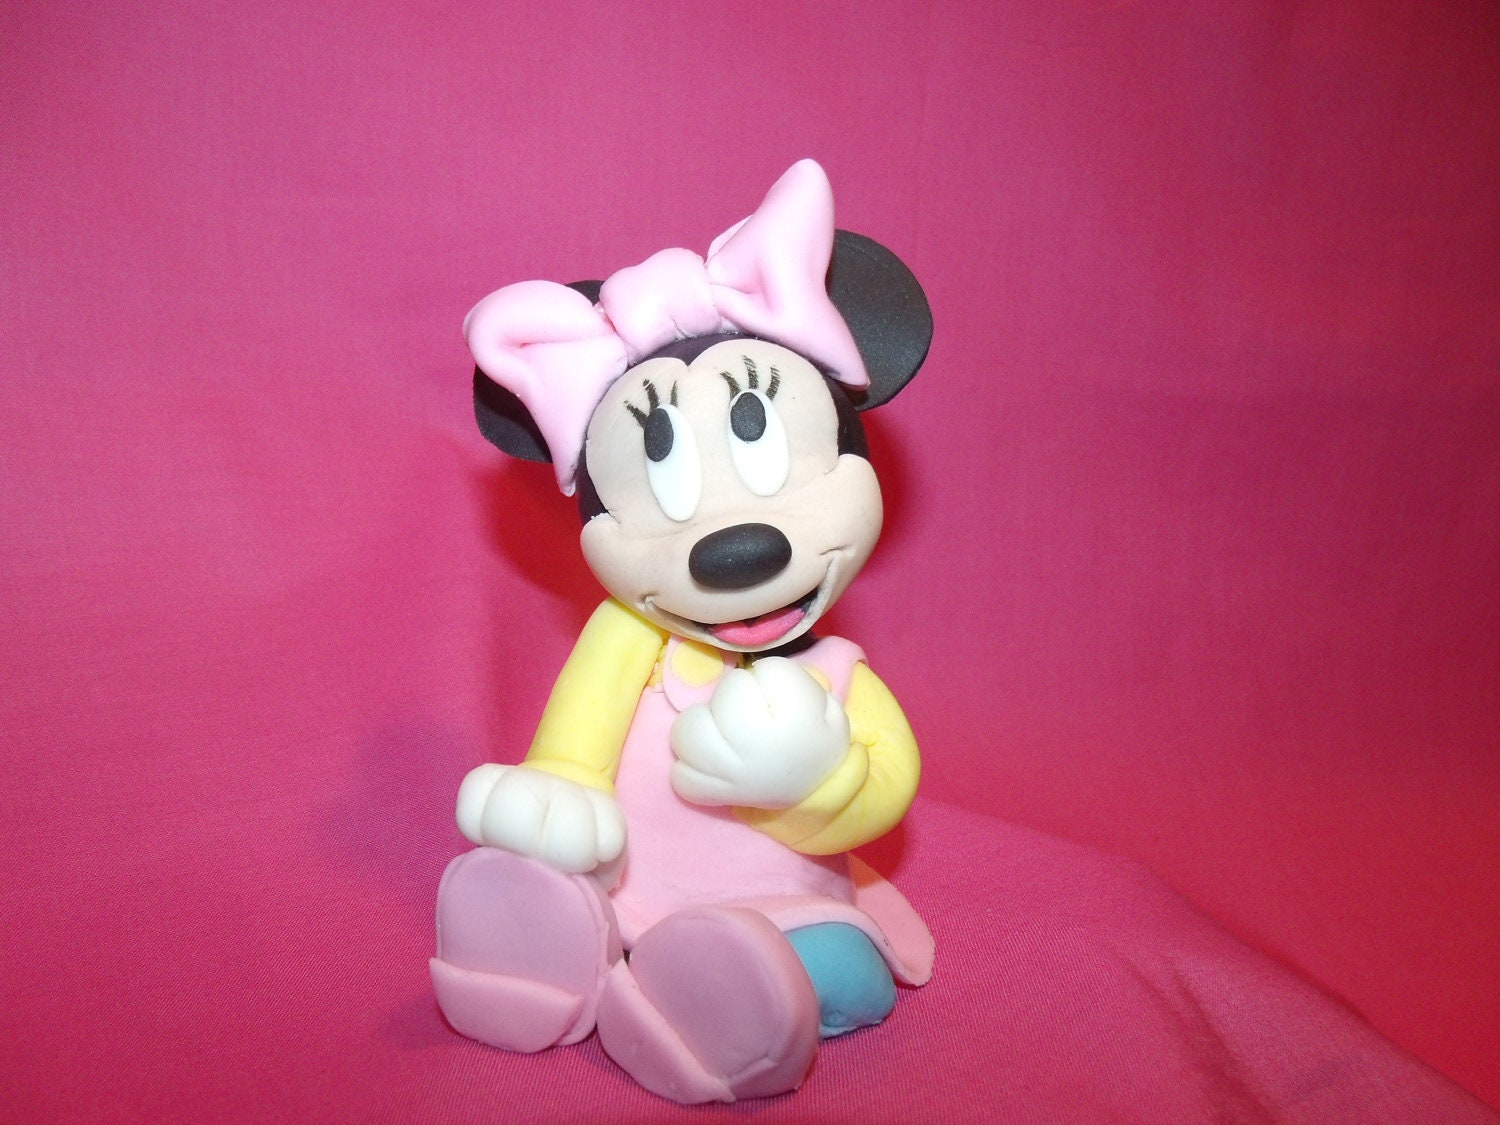 Minnie Mouse Cake Topper Images : Fondant Minnie Mouse cake topper by Cupncake1 on Etsy